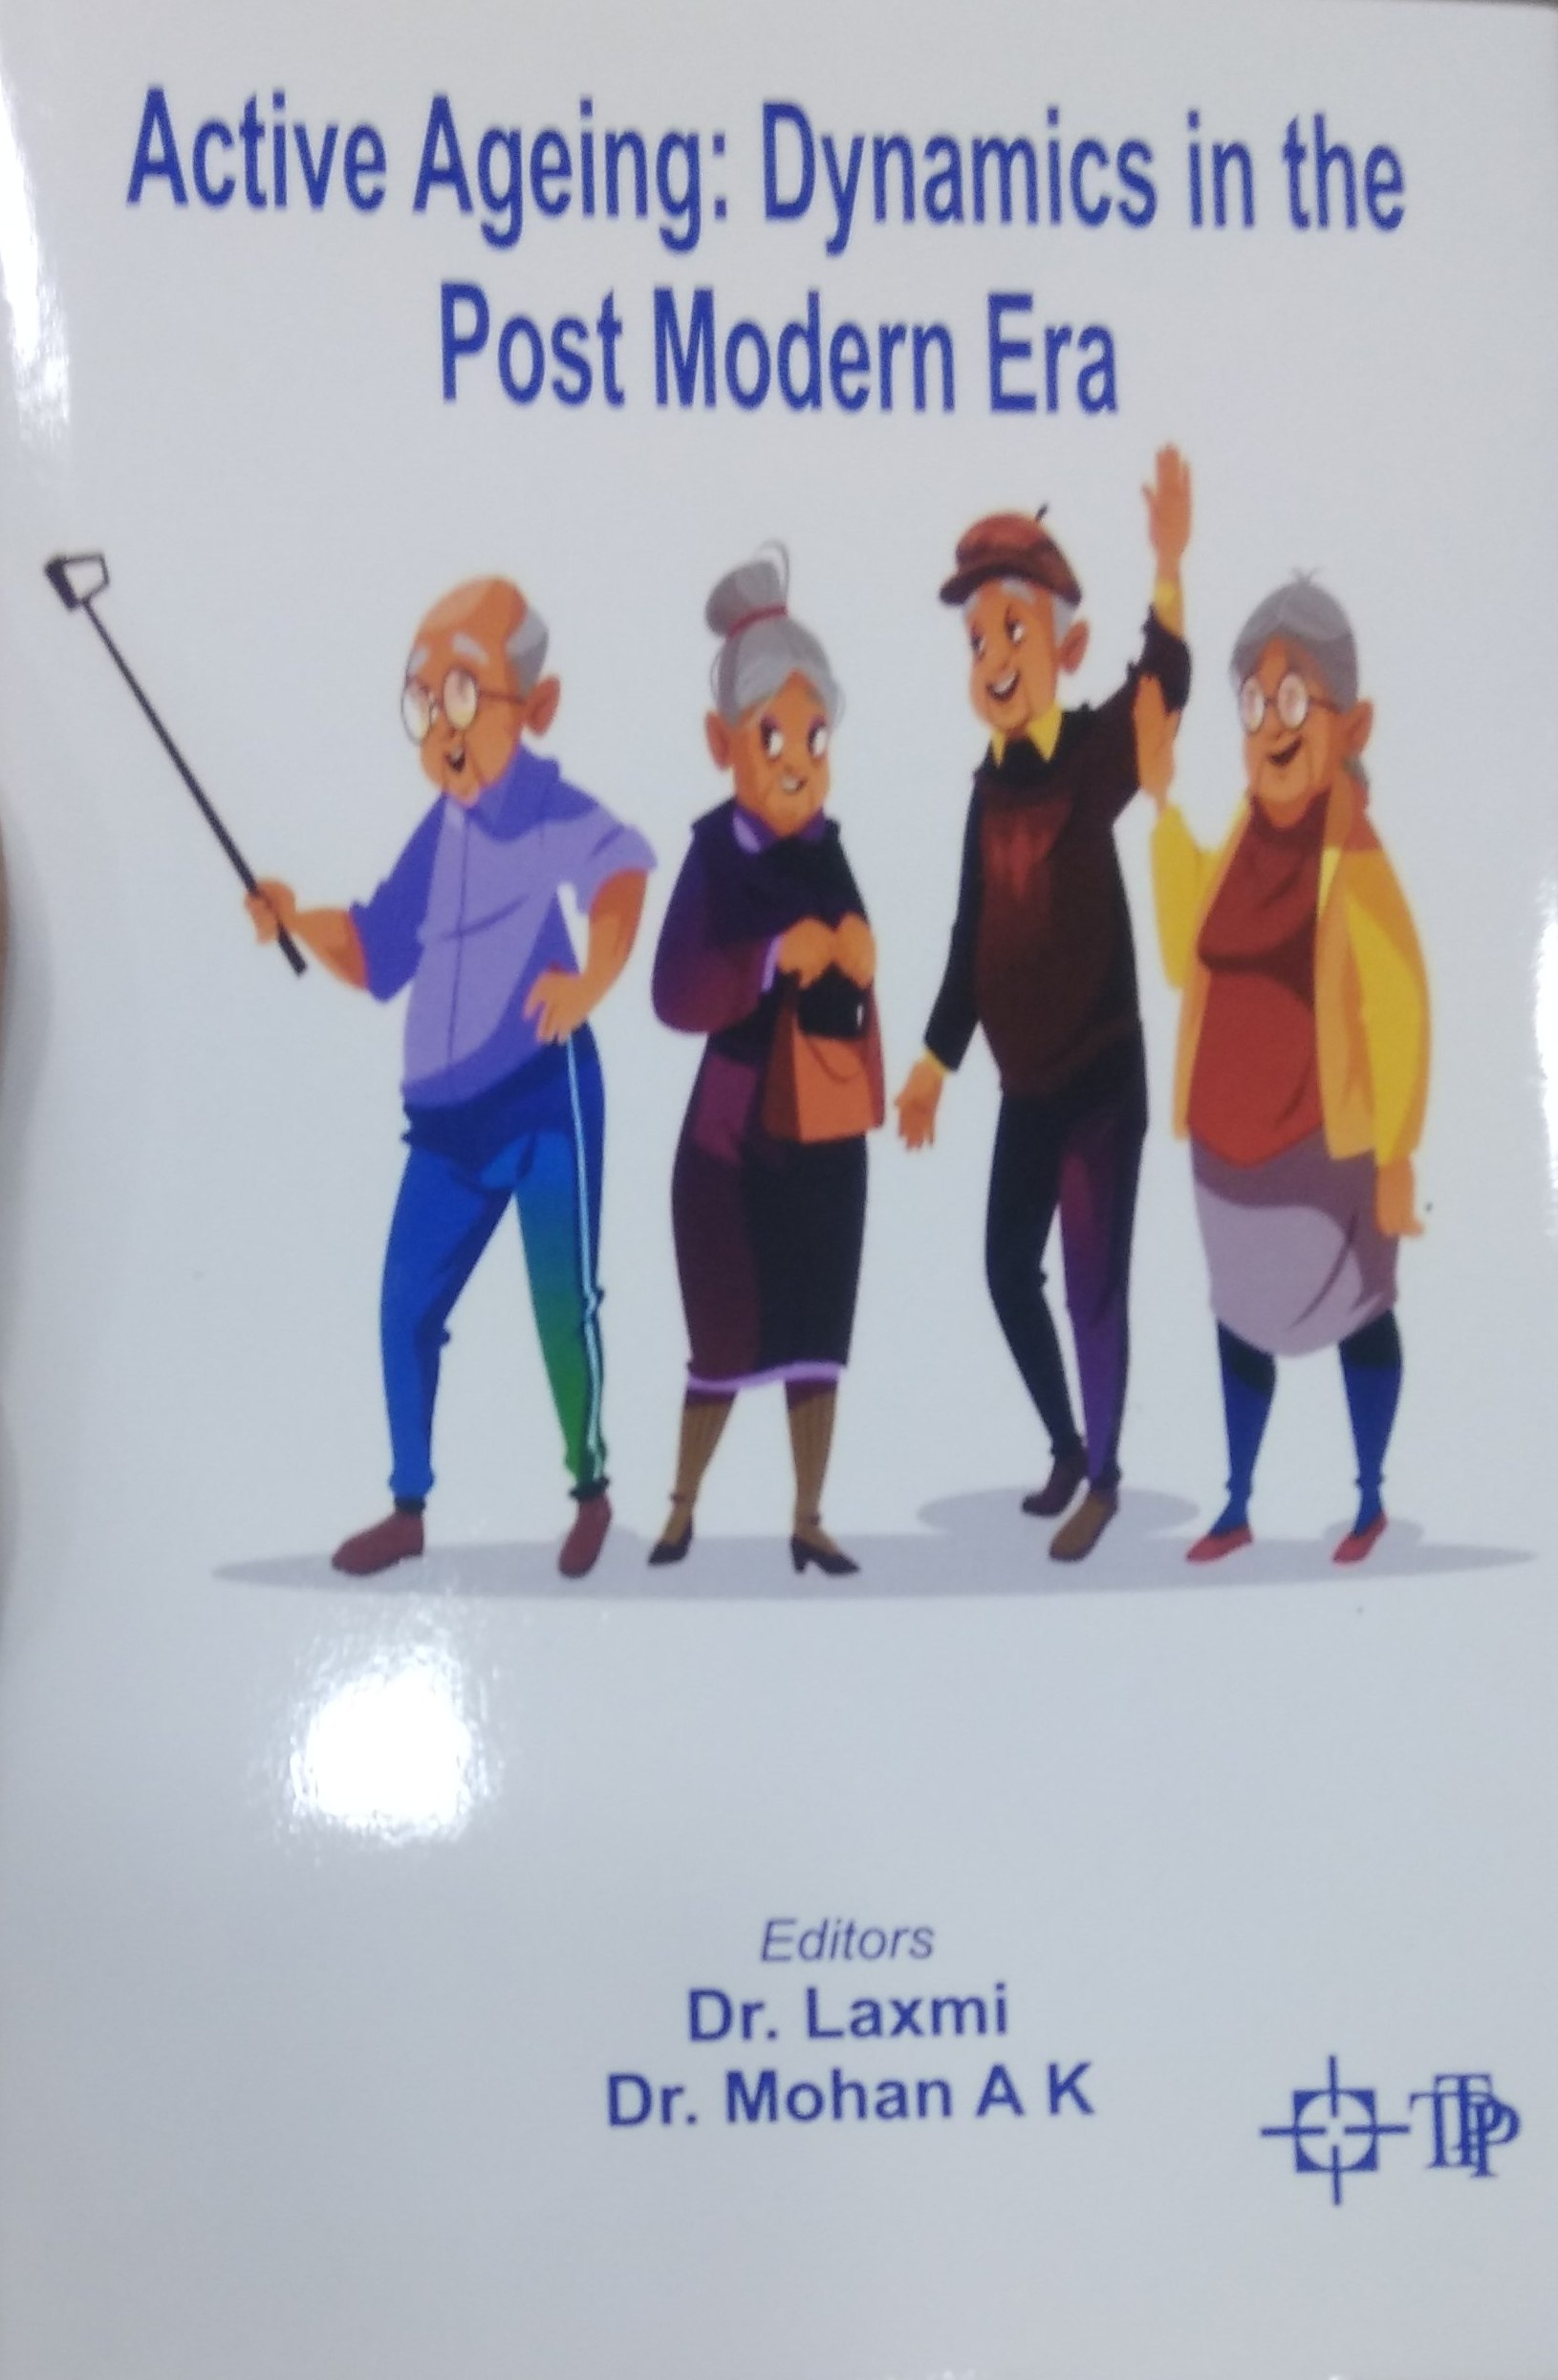 Active Ageing Dynamics in the Post Modern Era